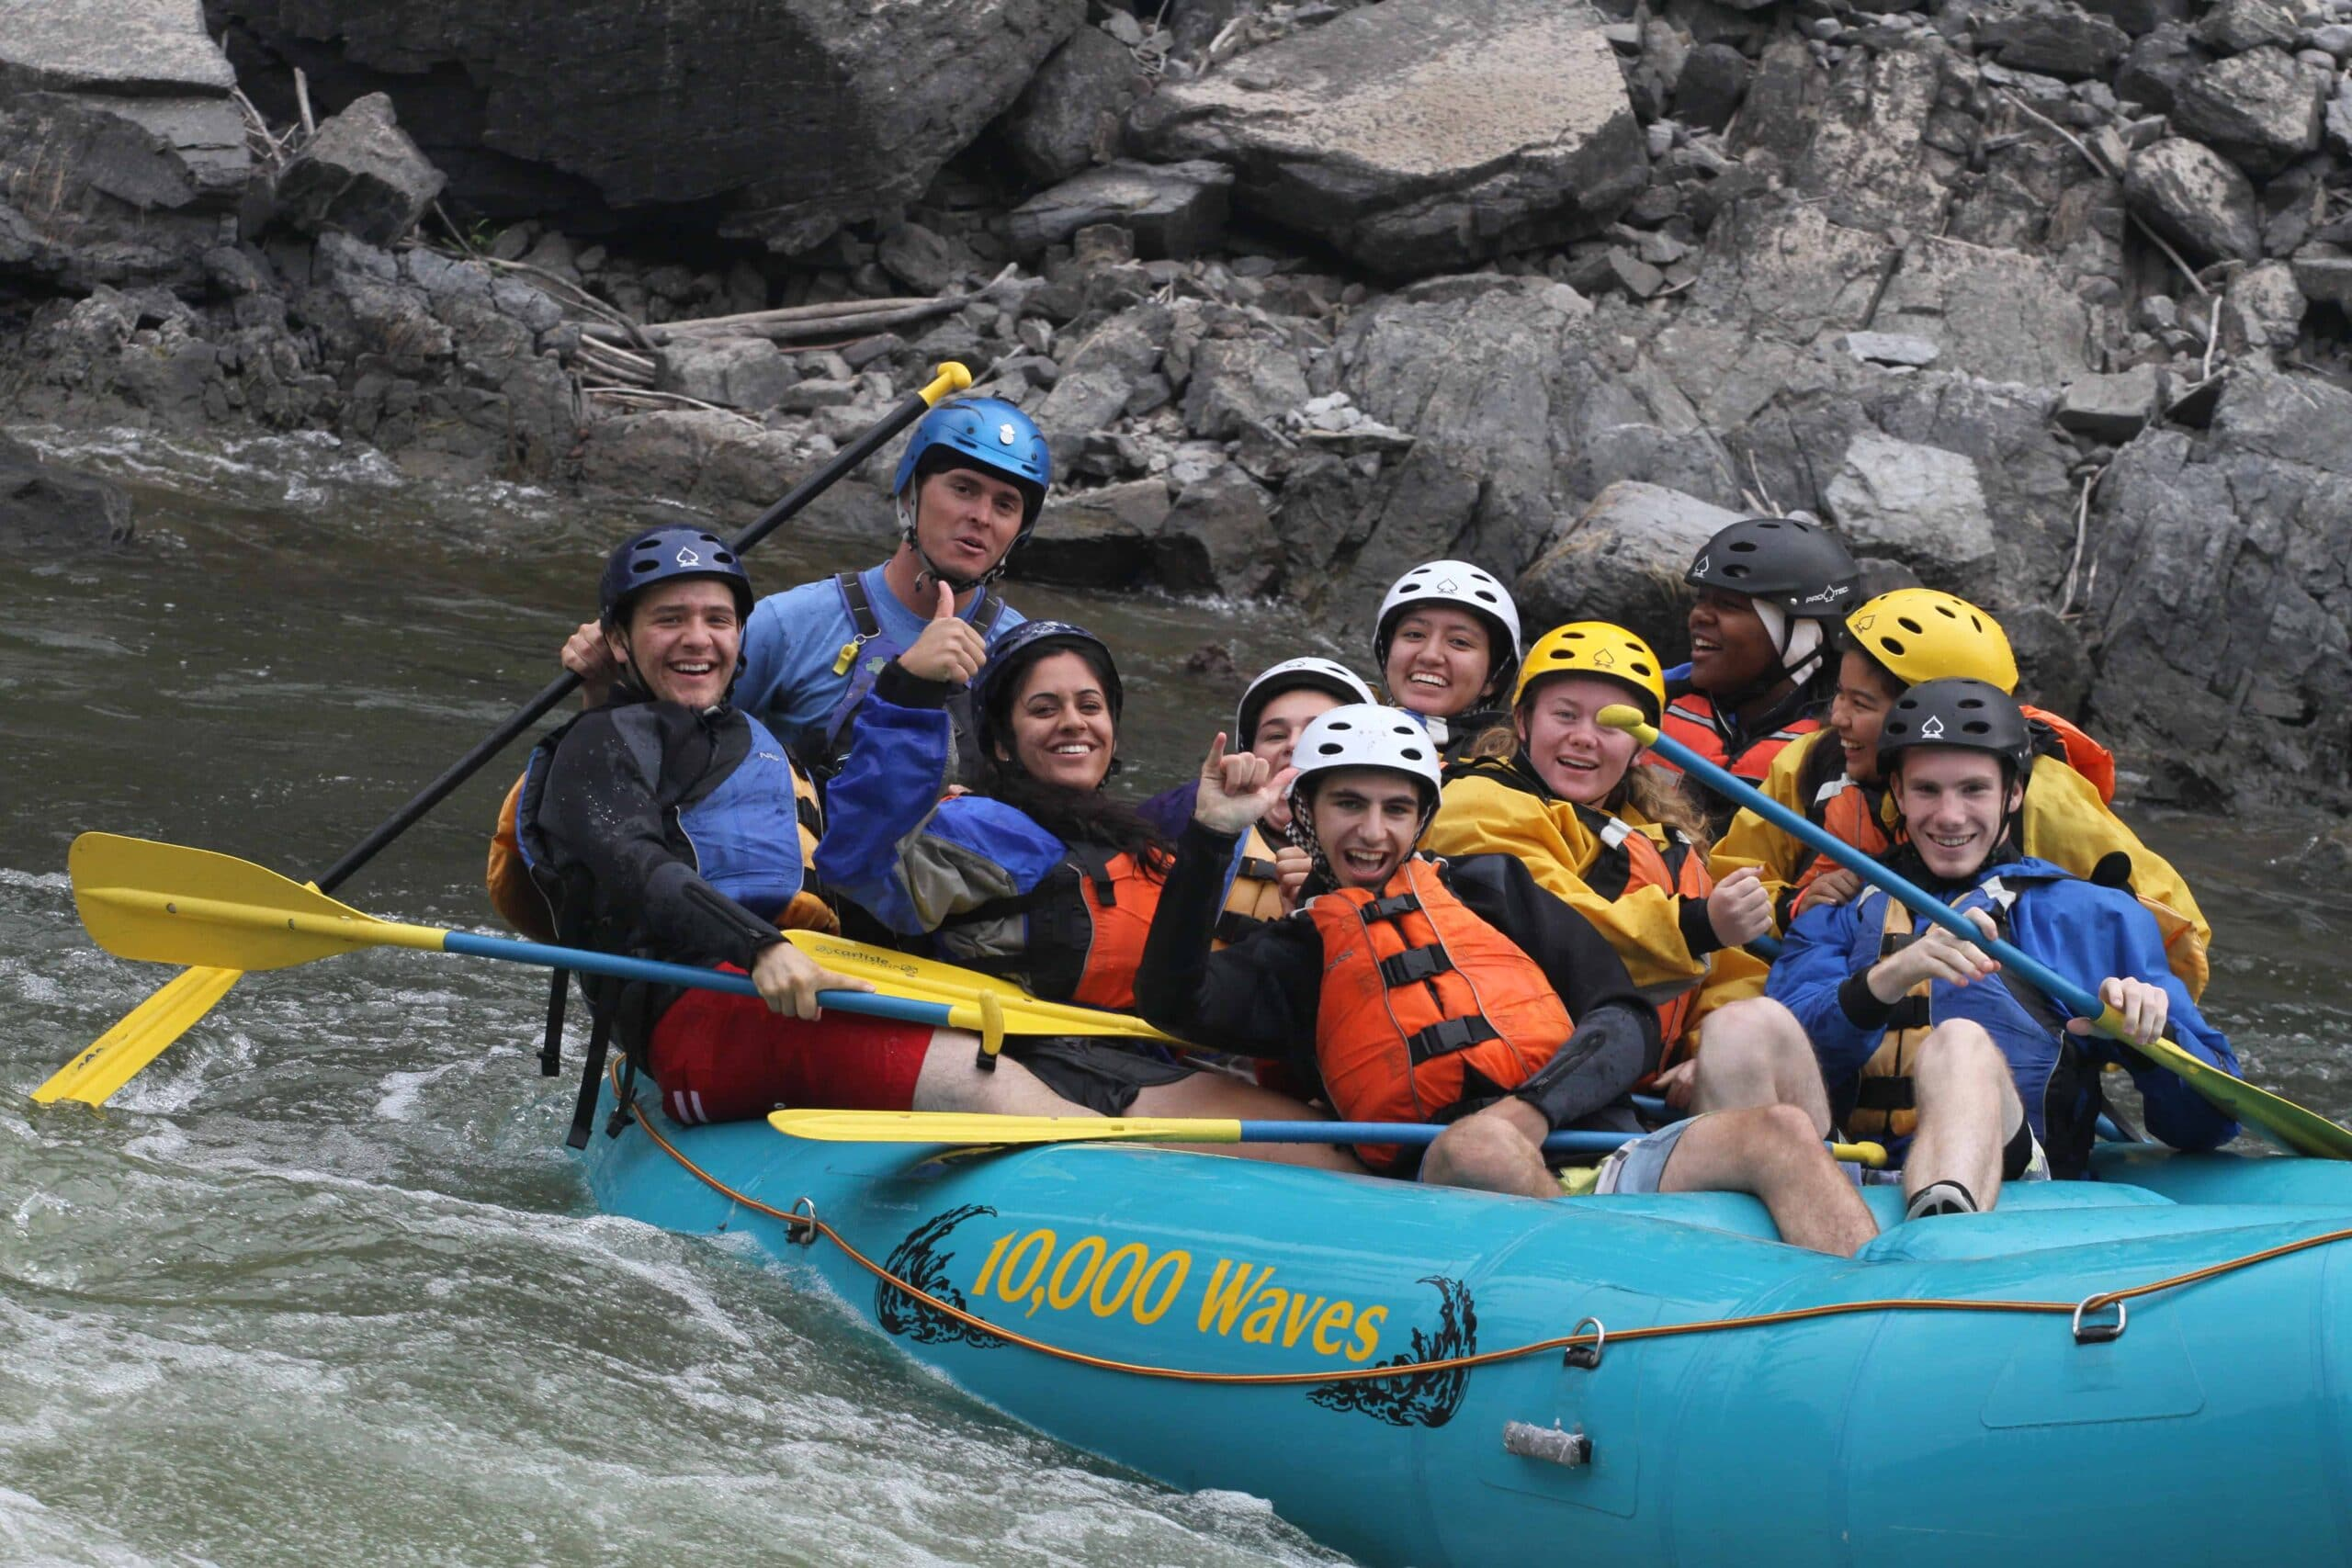 Rafting near Missoula, Montana